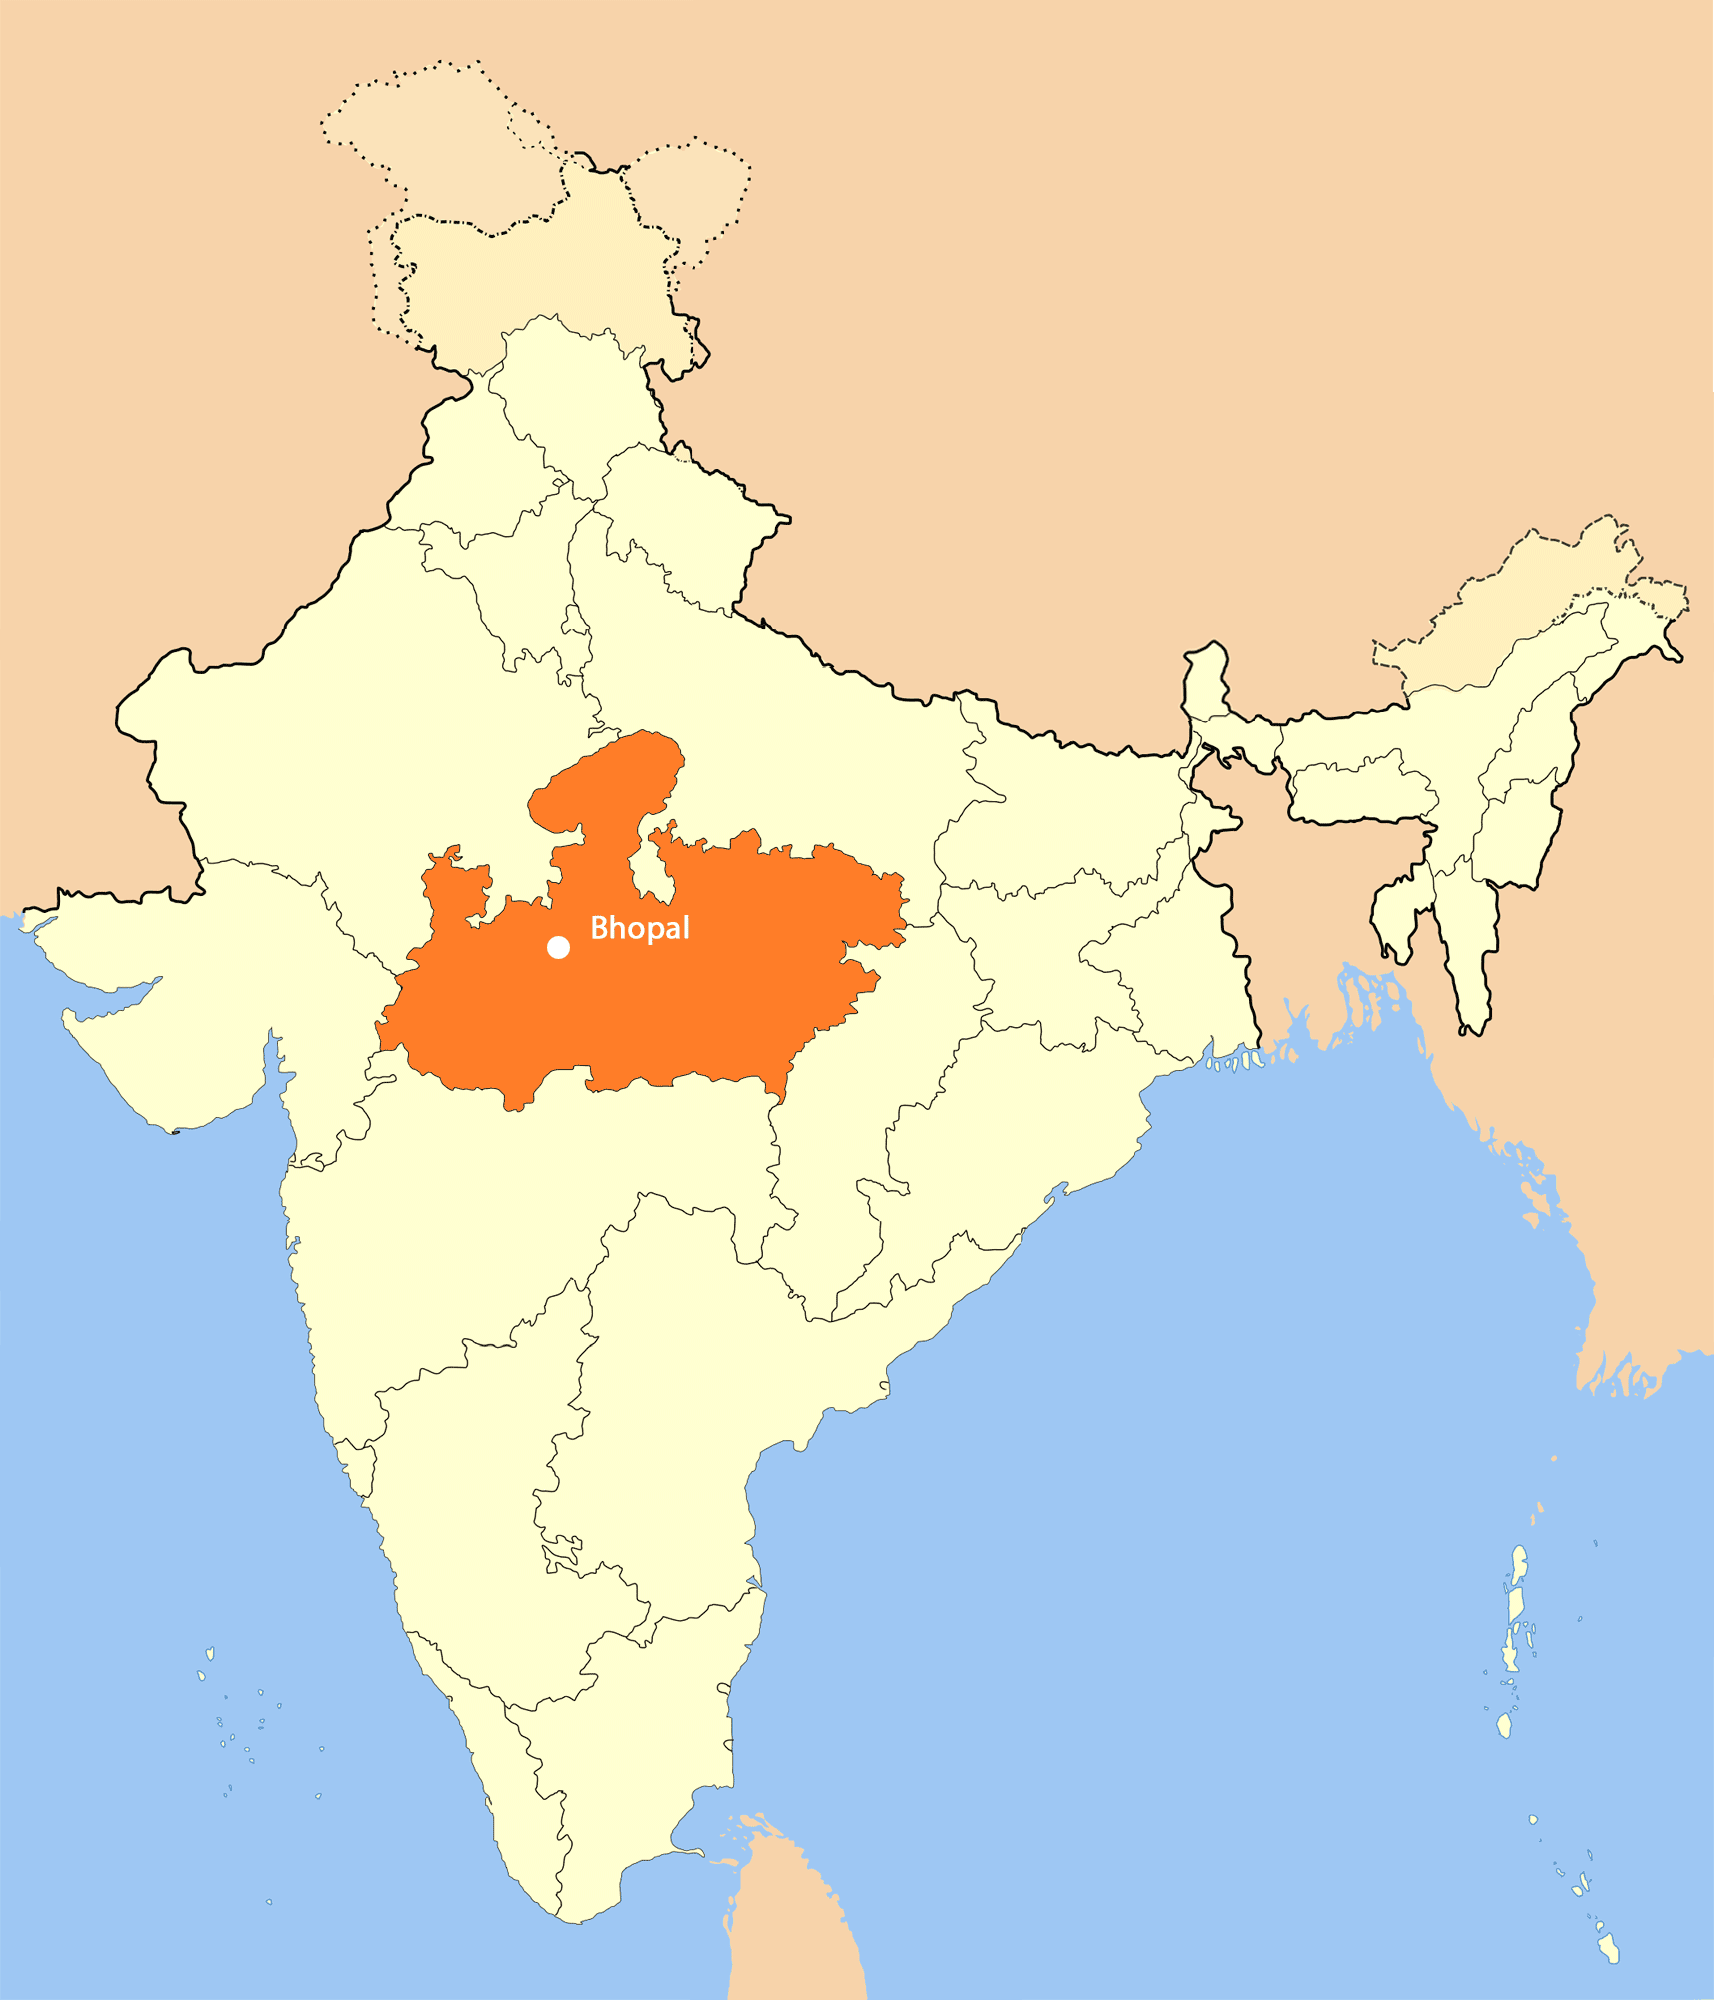 Location Map of Bhopal • Mapsof.net.